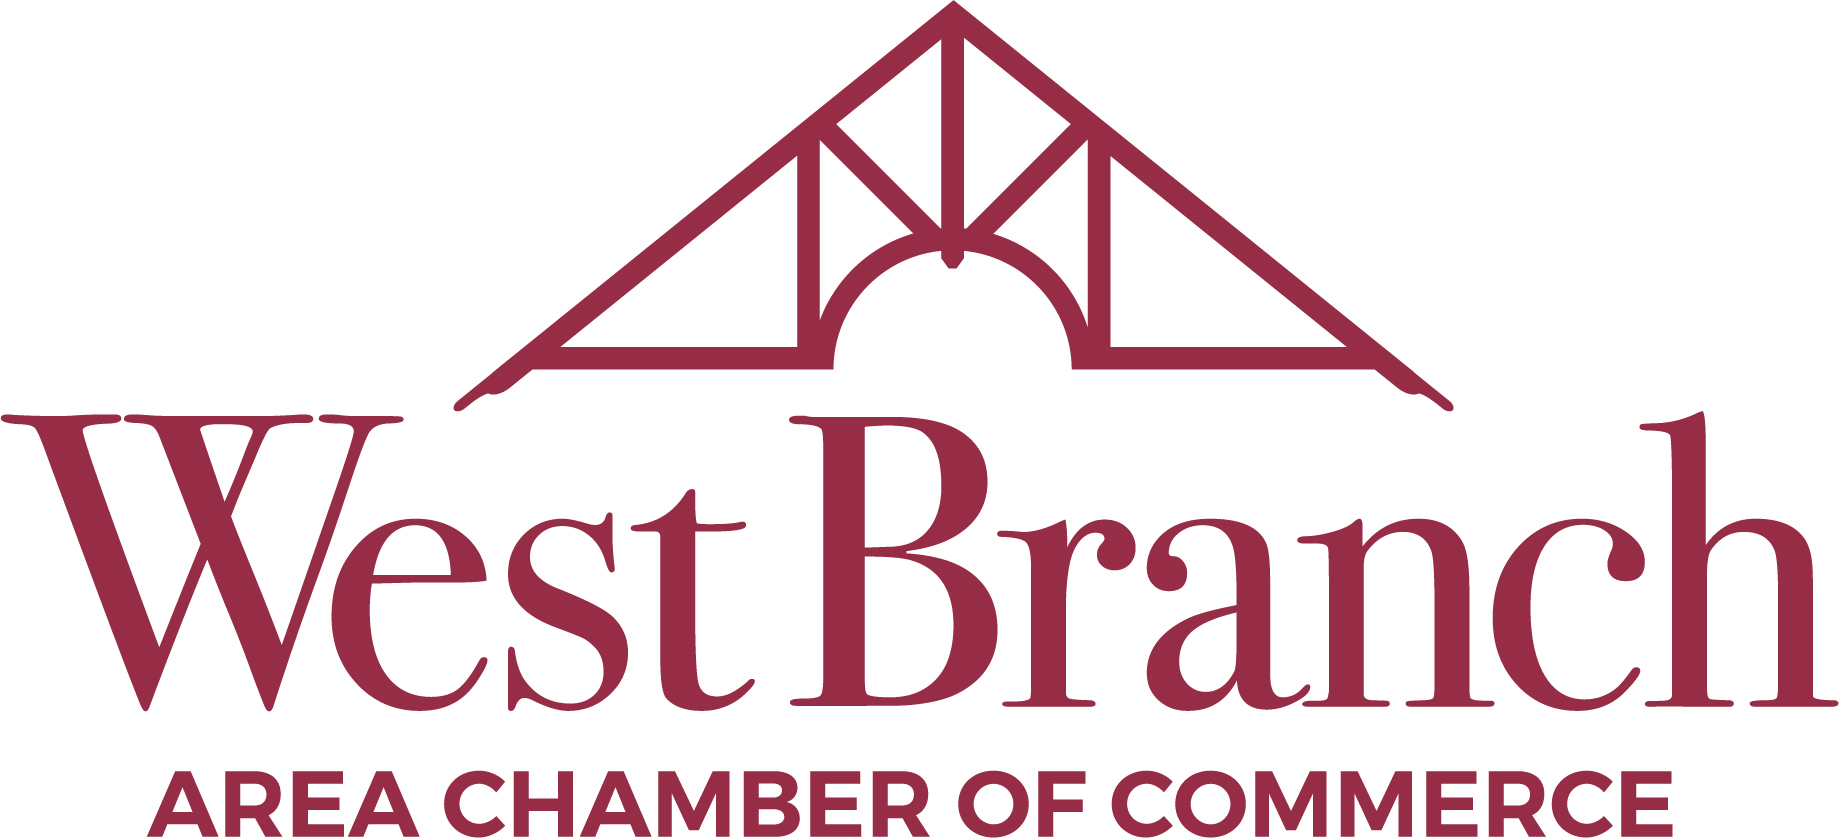 West Branch Area Chamber Of Commerce